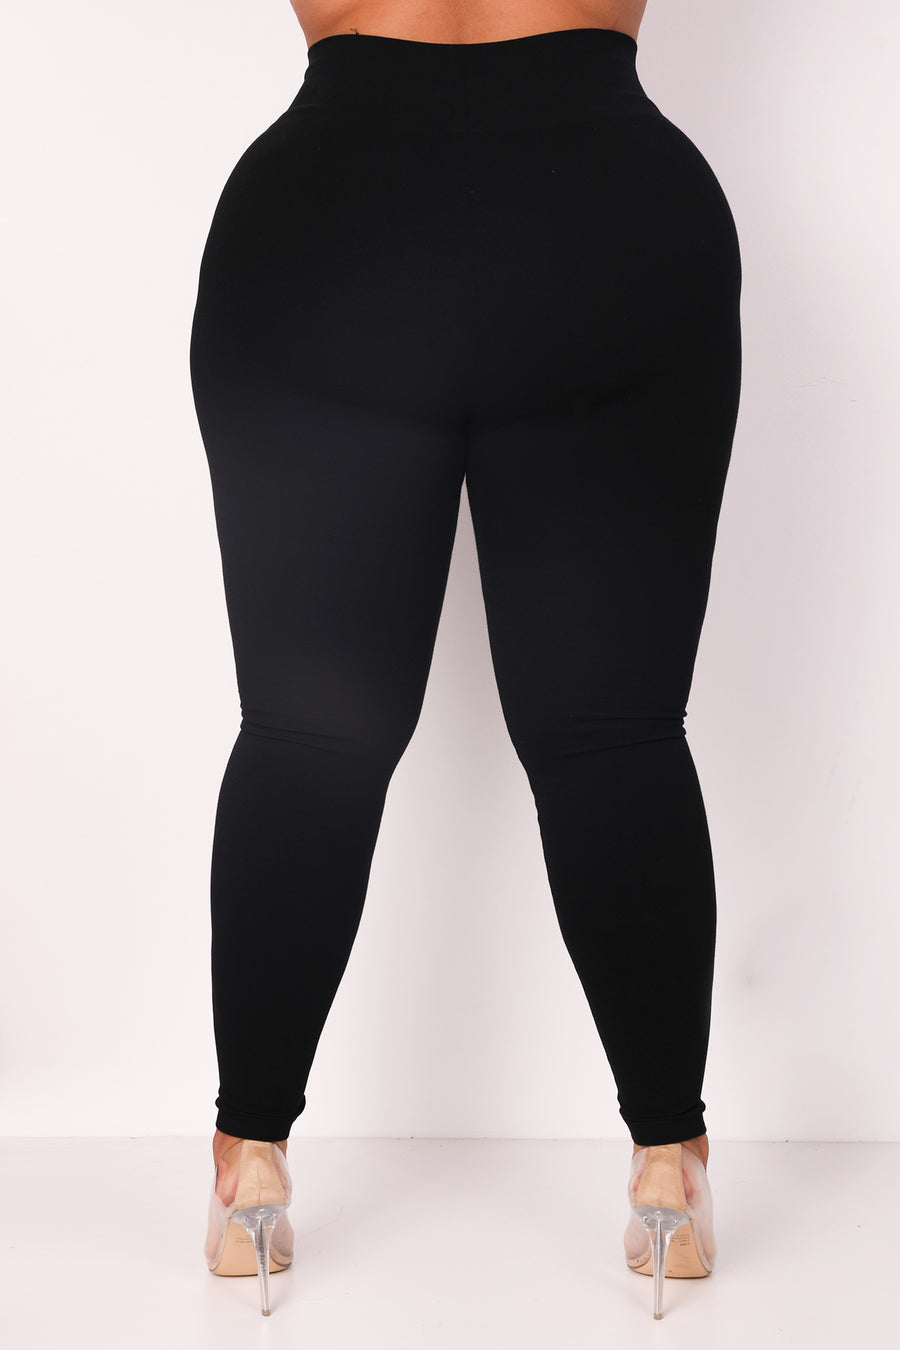 The Black Cotton Tummy Control Legging (fits up to Plus)